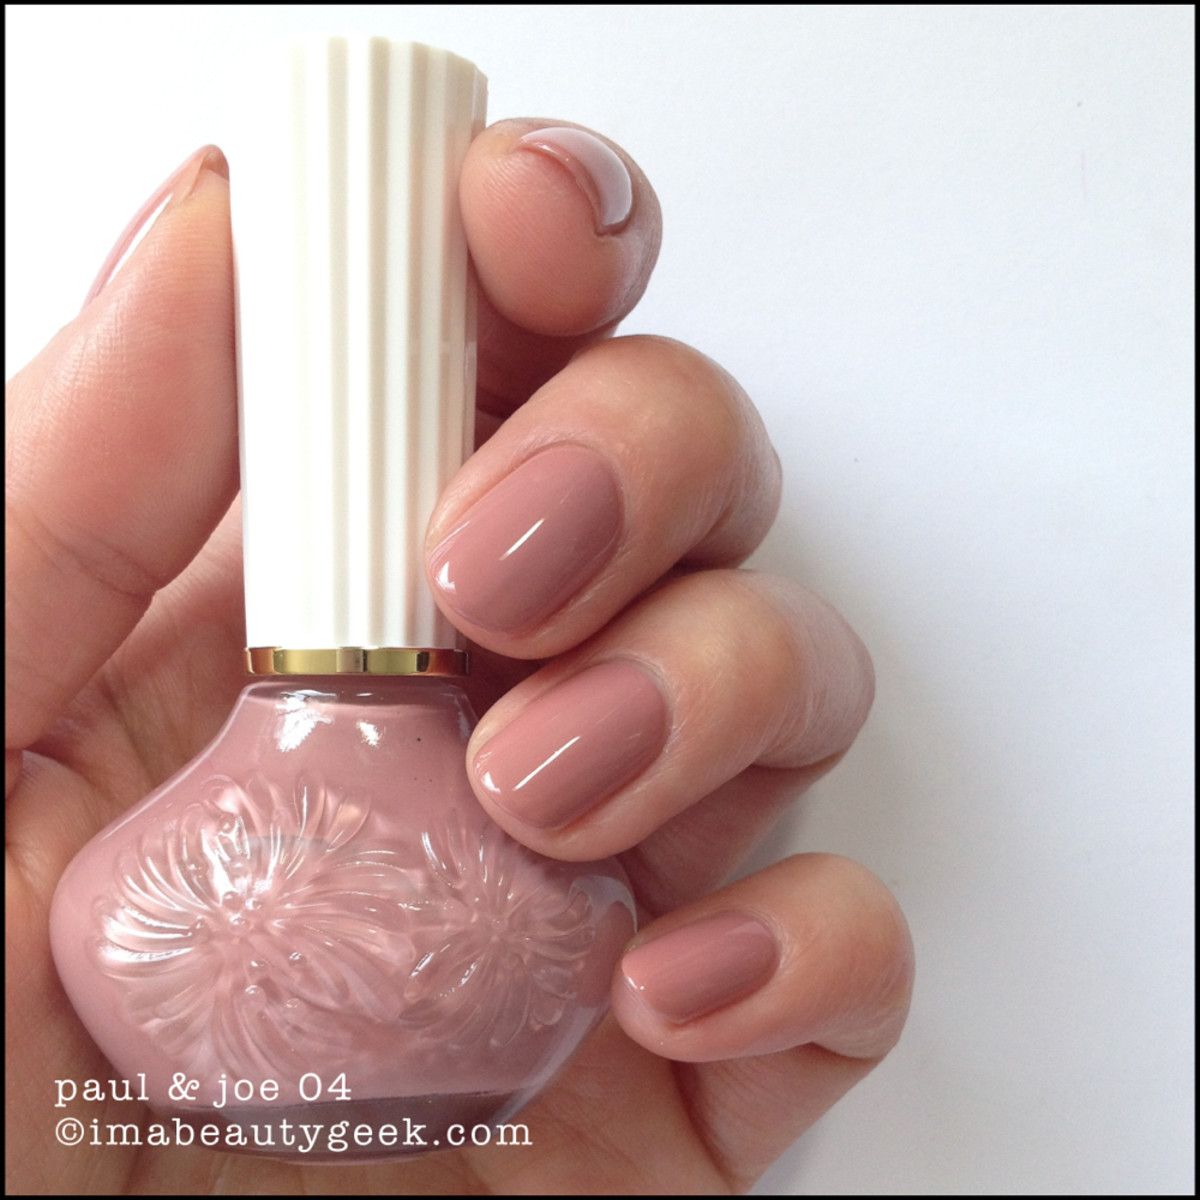 Paul & Joe Nail Polish 04 Figue